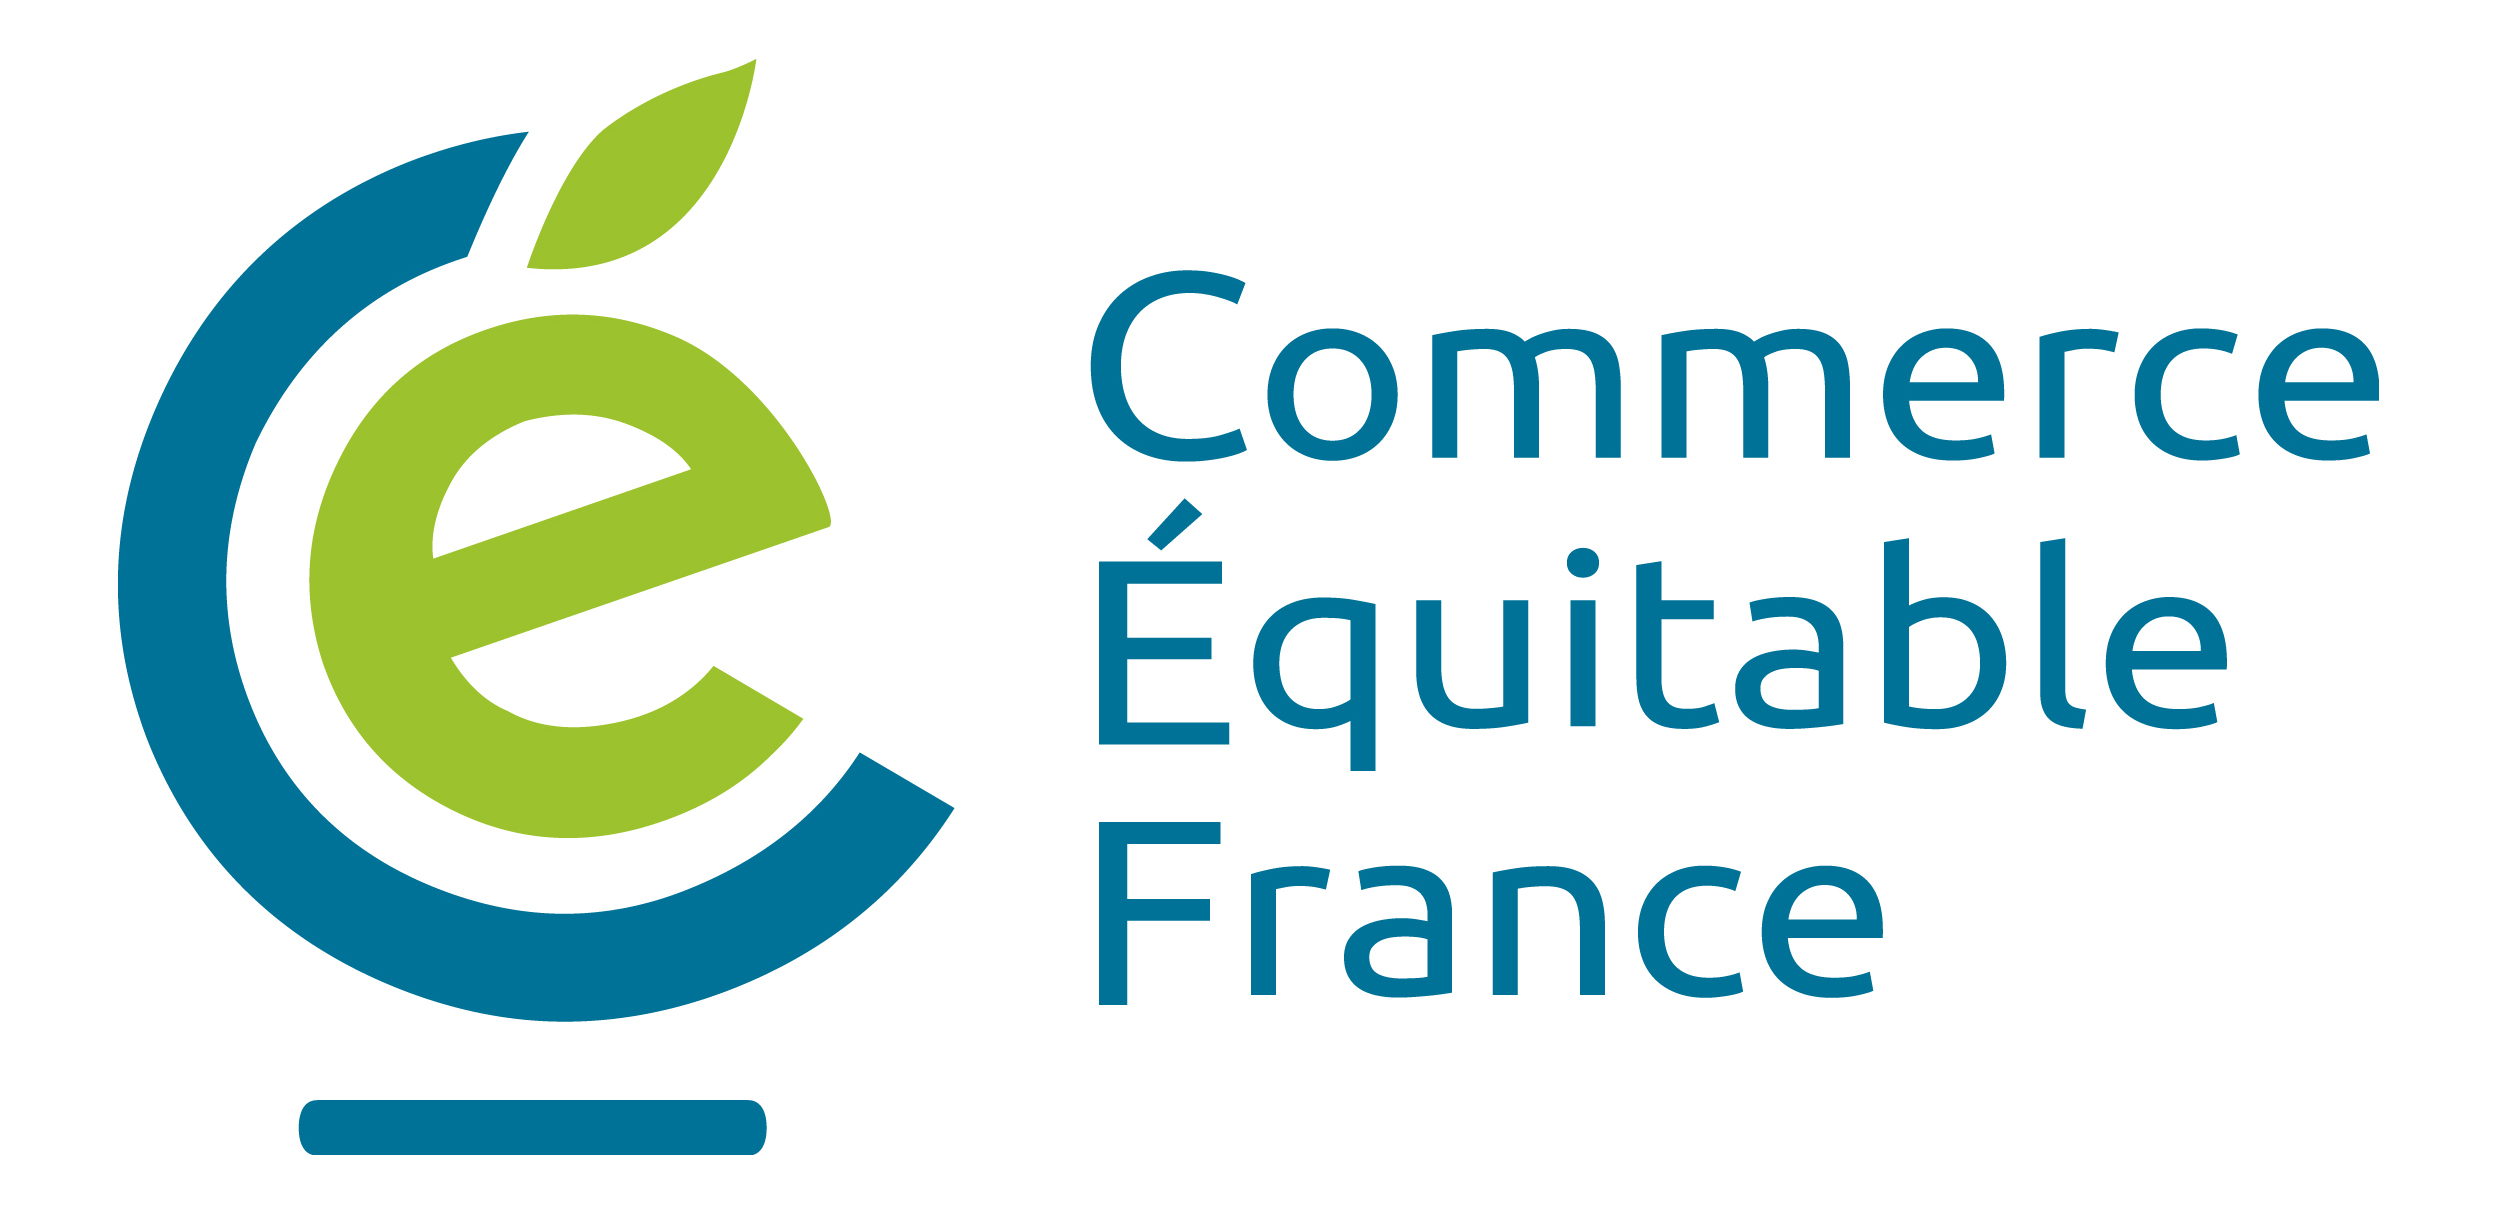 le commerce equitable en france